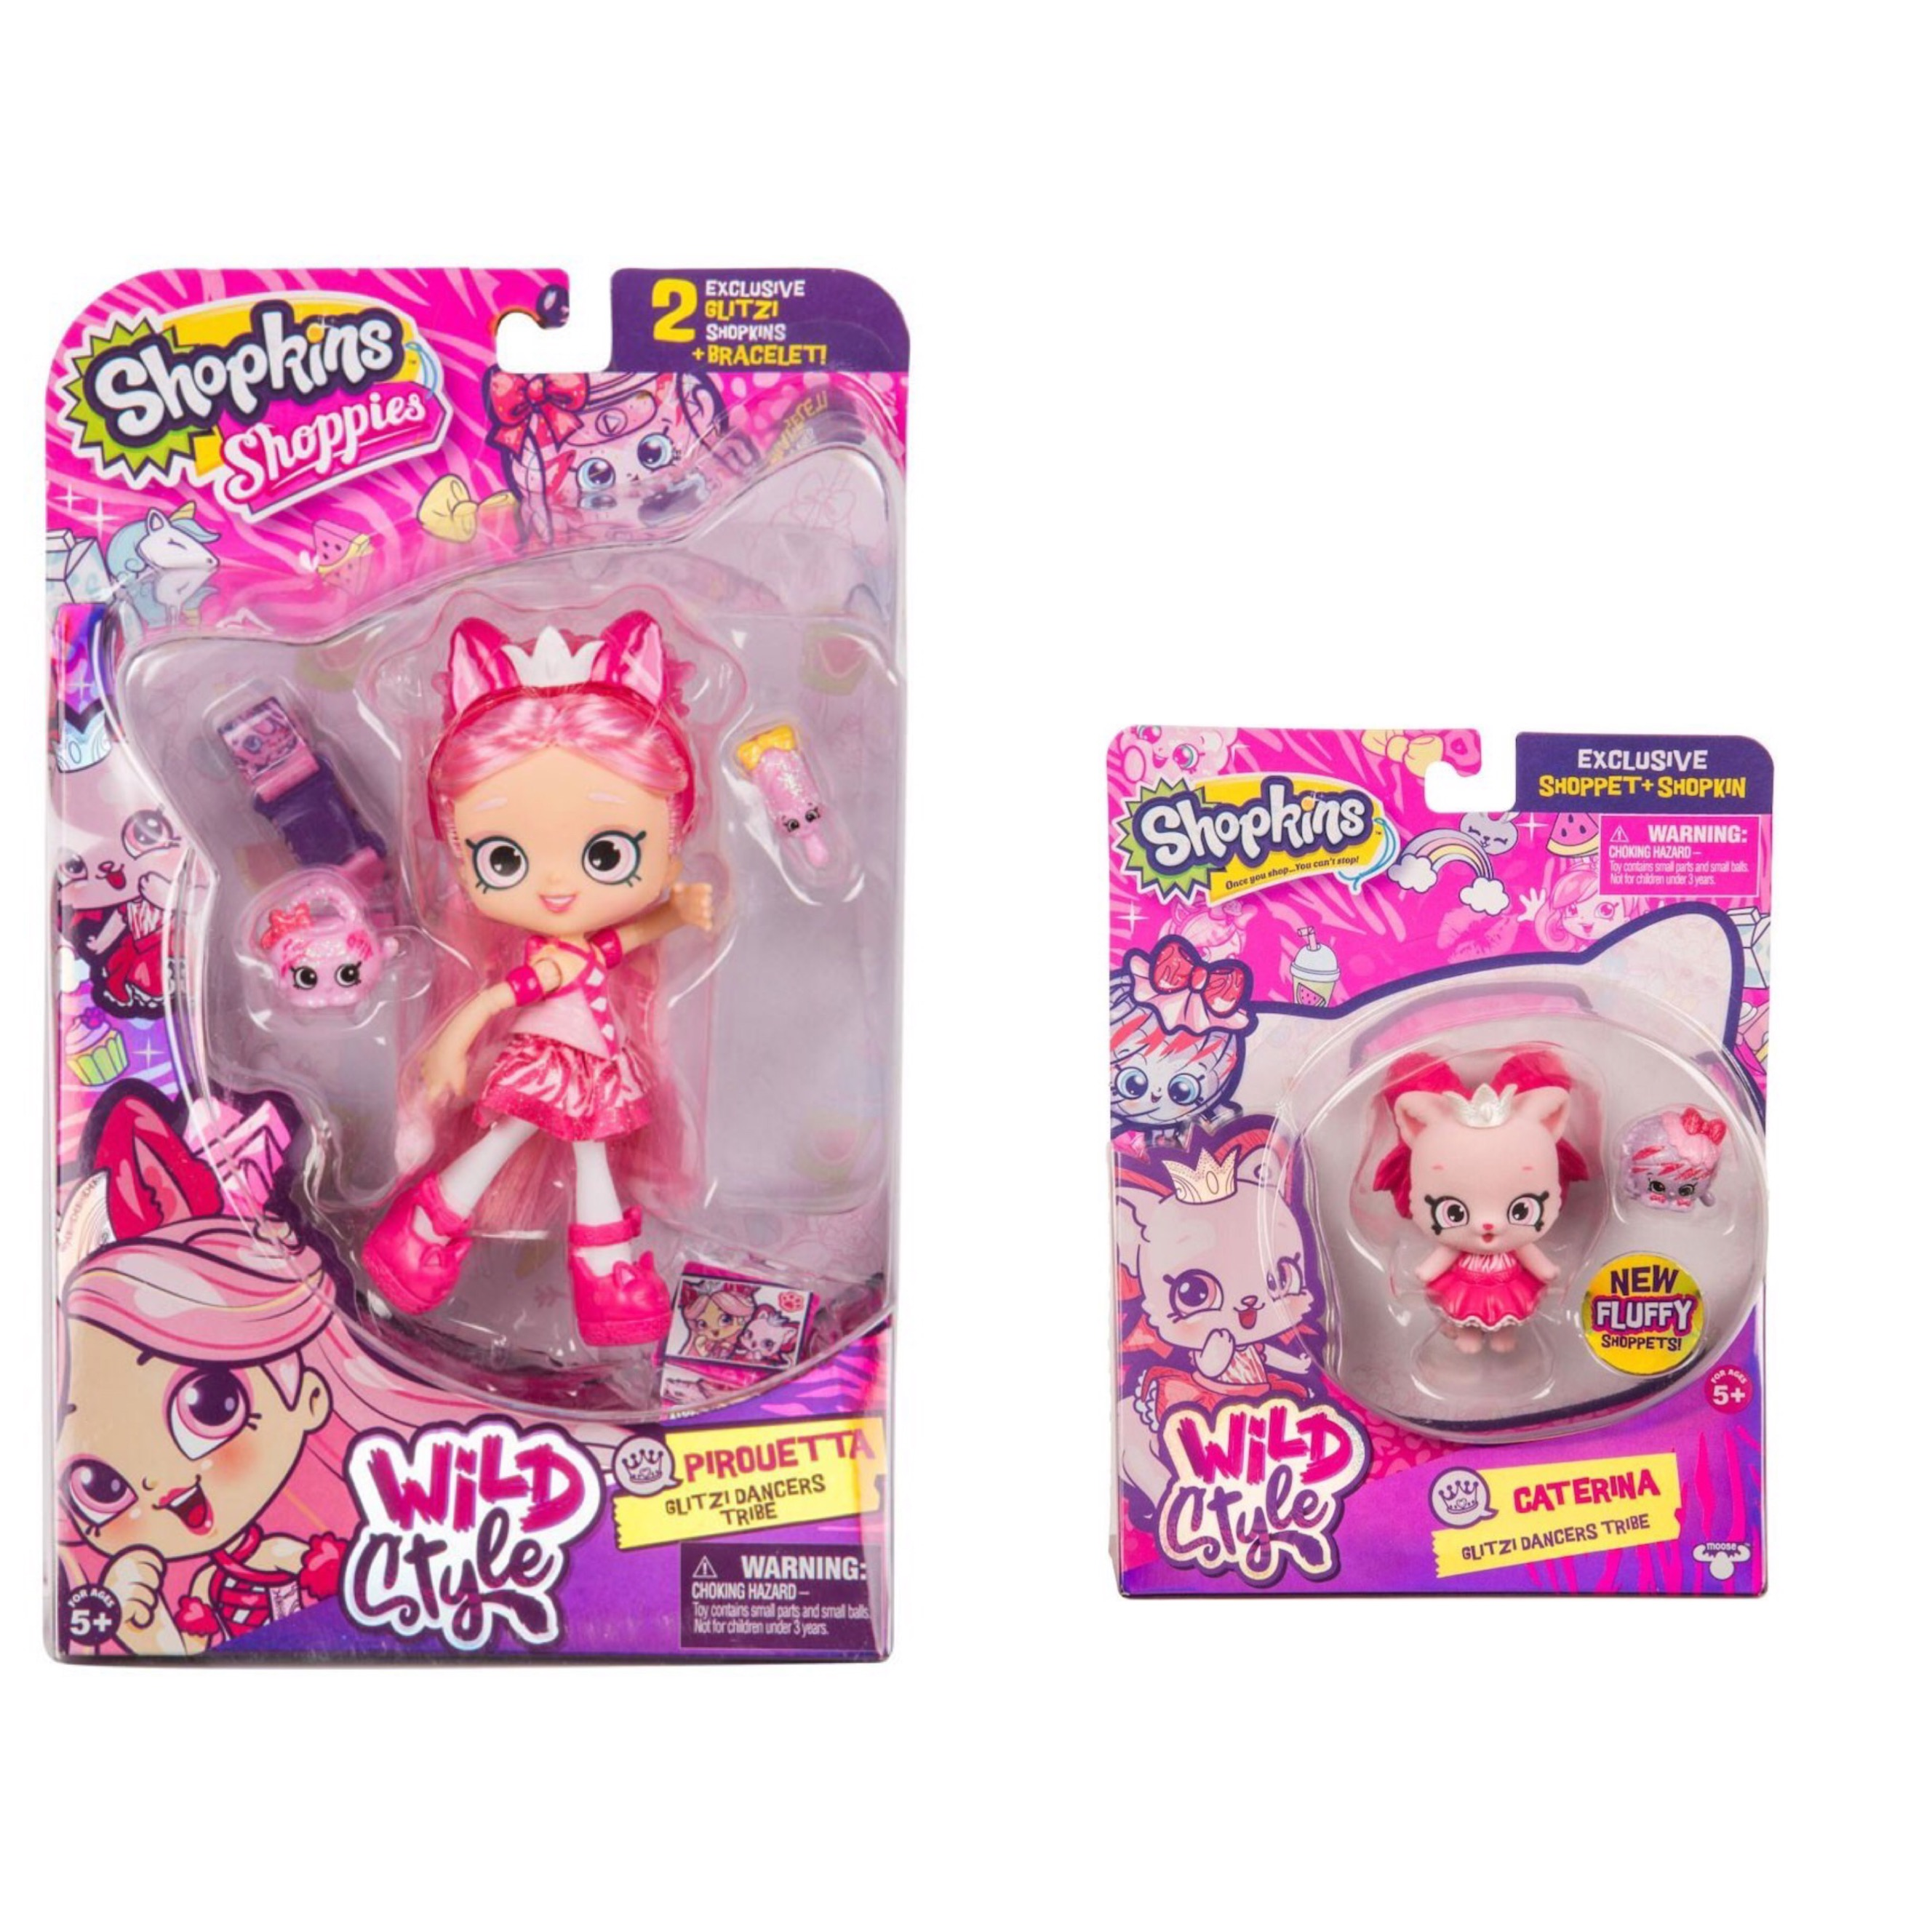 Shopkins Wild Style Pirouetta Doll and Caterina Shoppet Glitzi Dancers Tribe Bundle